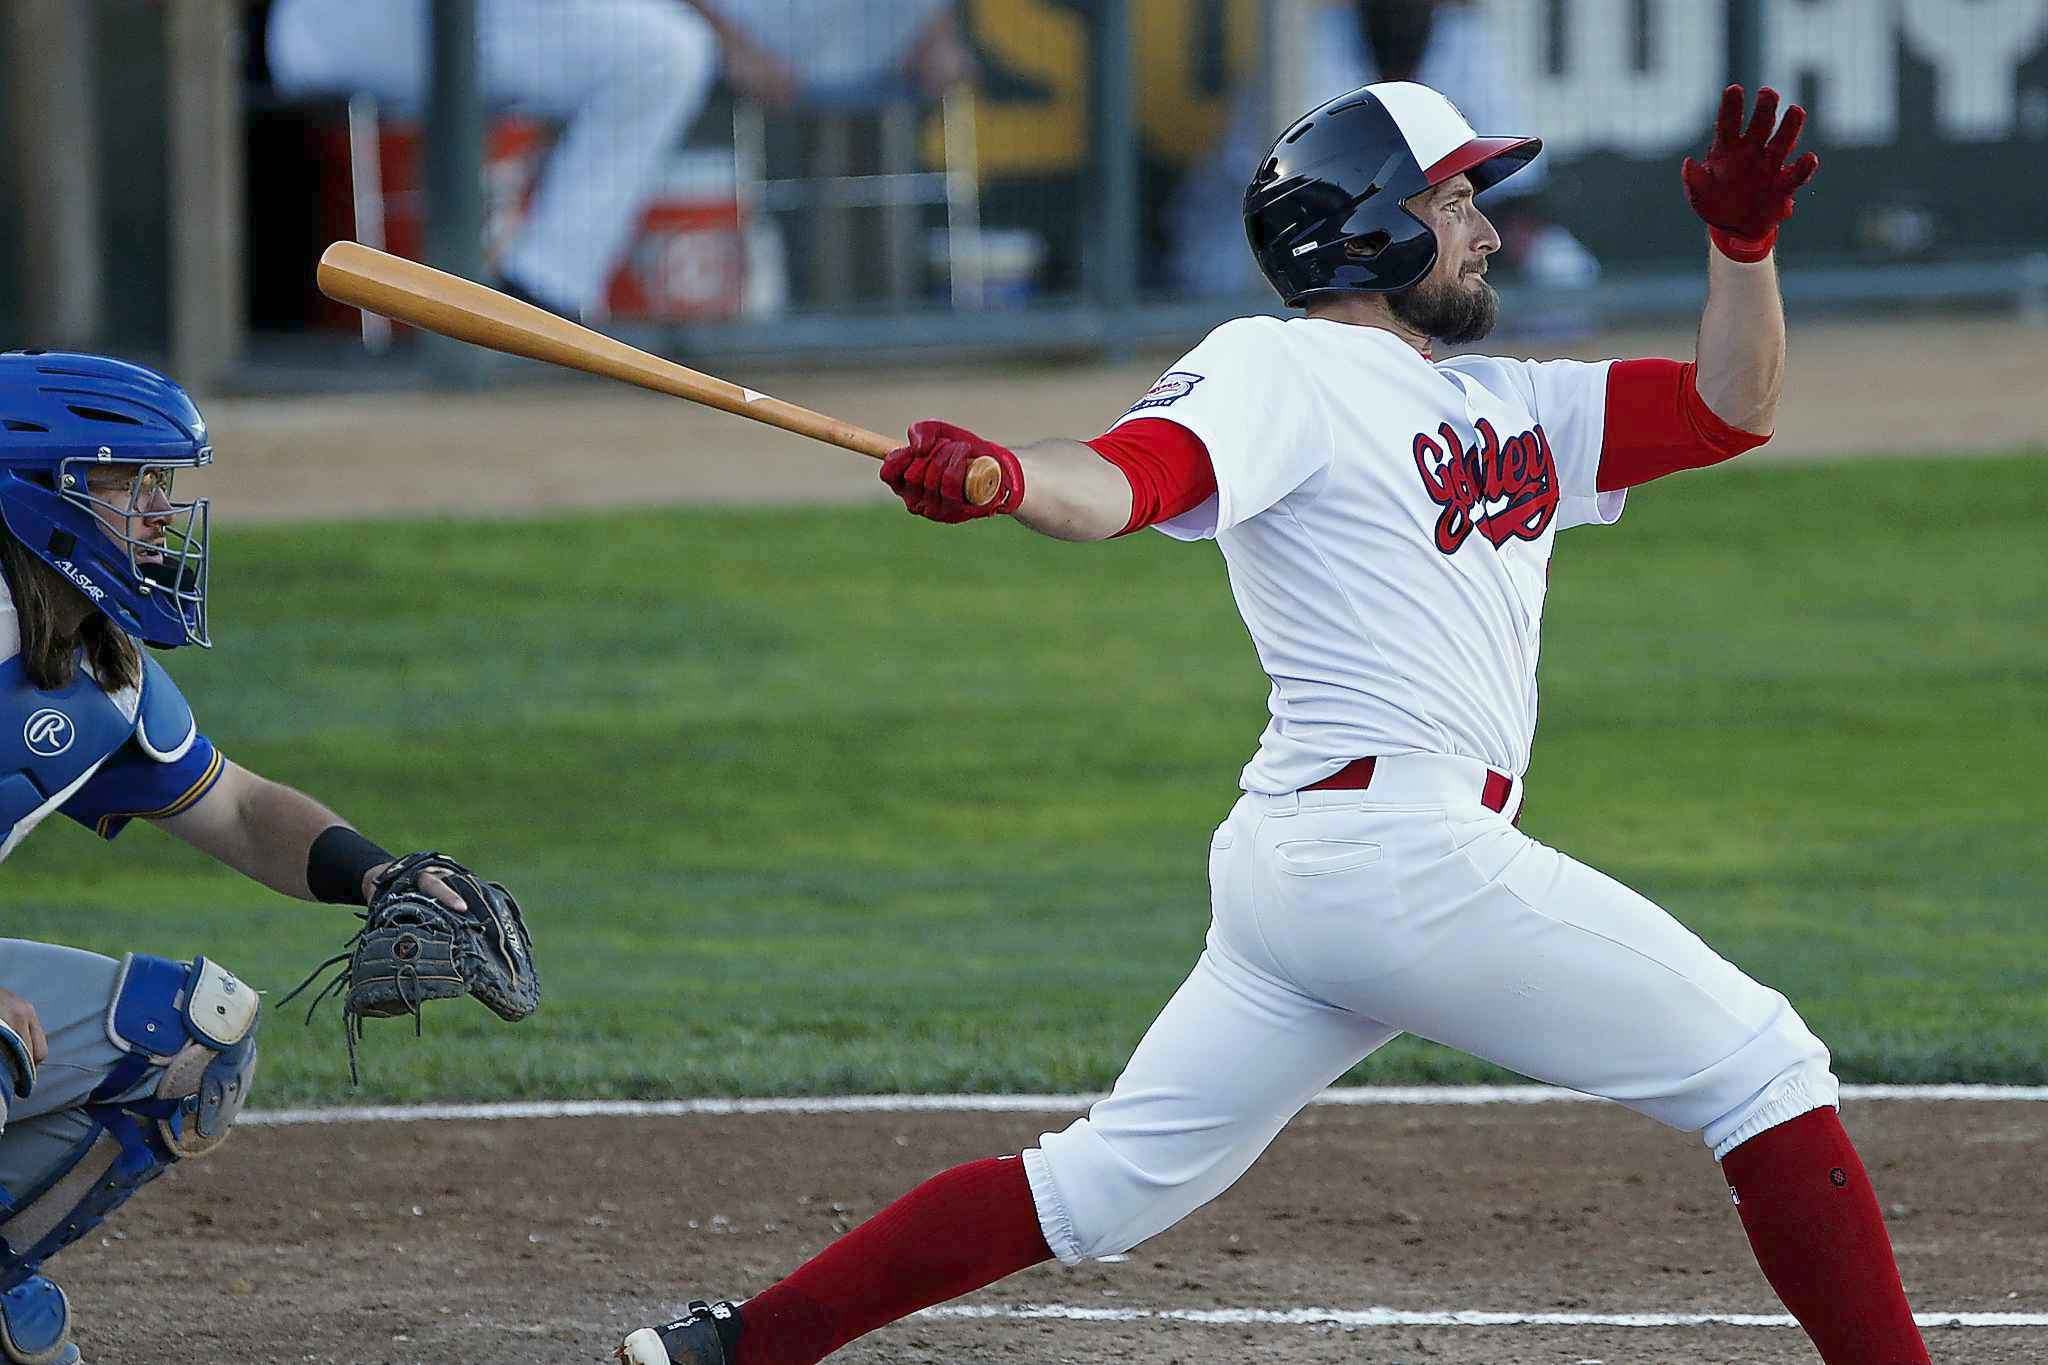 JOHN WOODS / WINNIPEG FREE PRESS</p><p>Winnipeg Goldeyes&#39; Tucker Nathans bats against the Sioux Falls Canaries in Winnipeg Monday.</p>